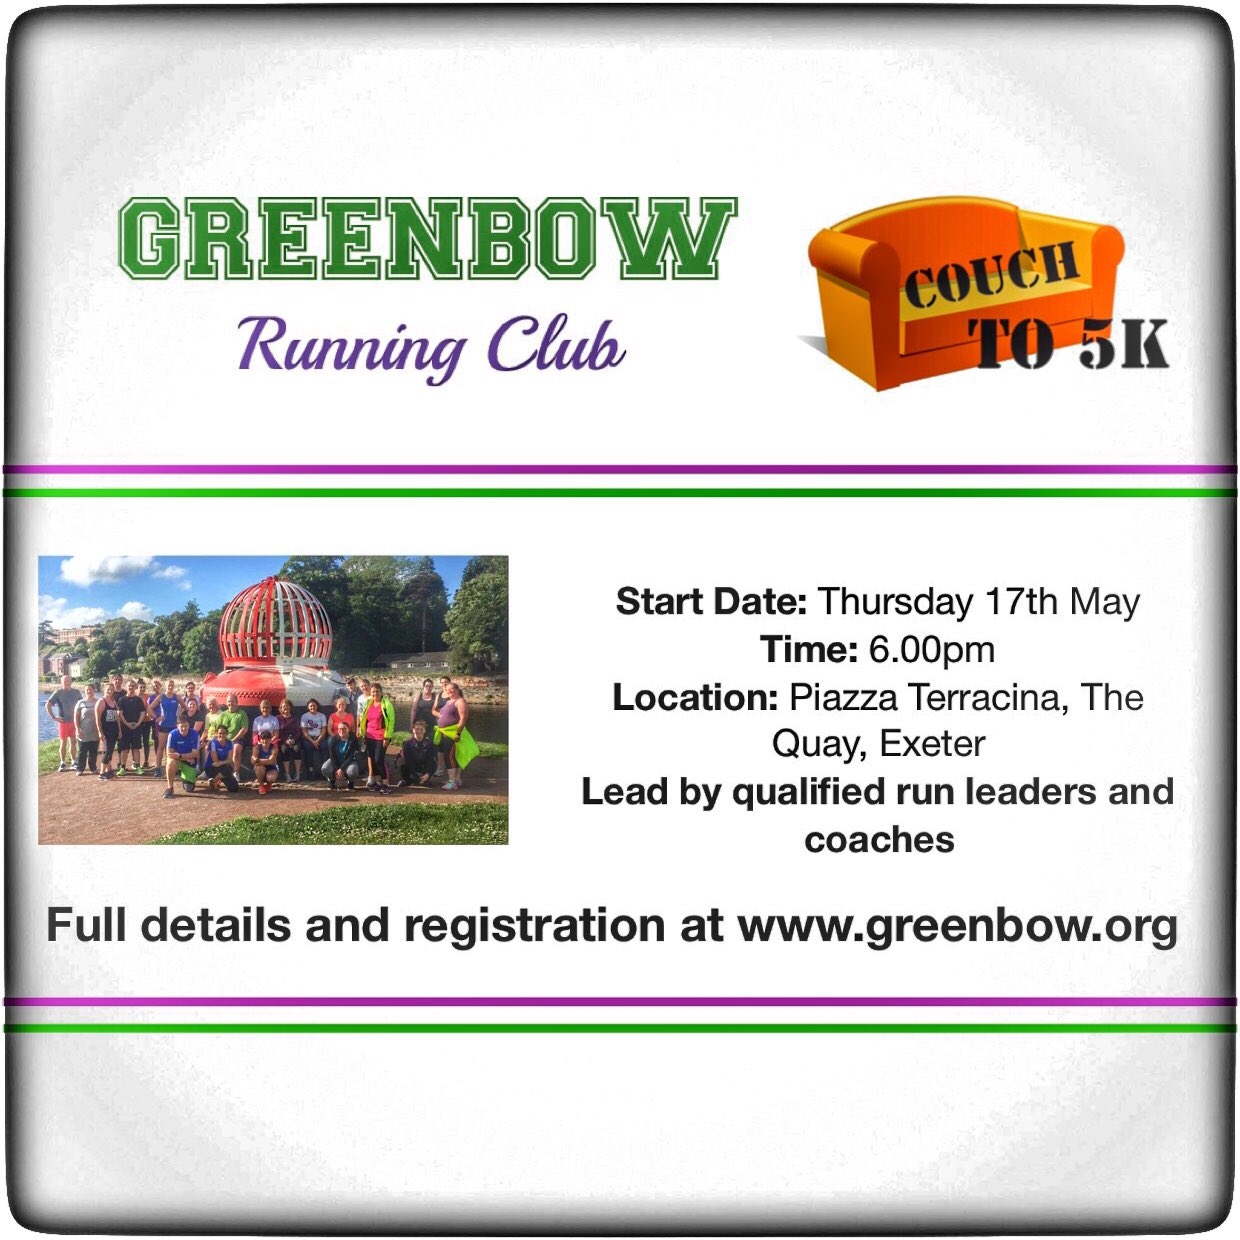 Couch To 5k Exeter Greenbow Runningclub On Twitter